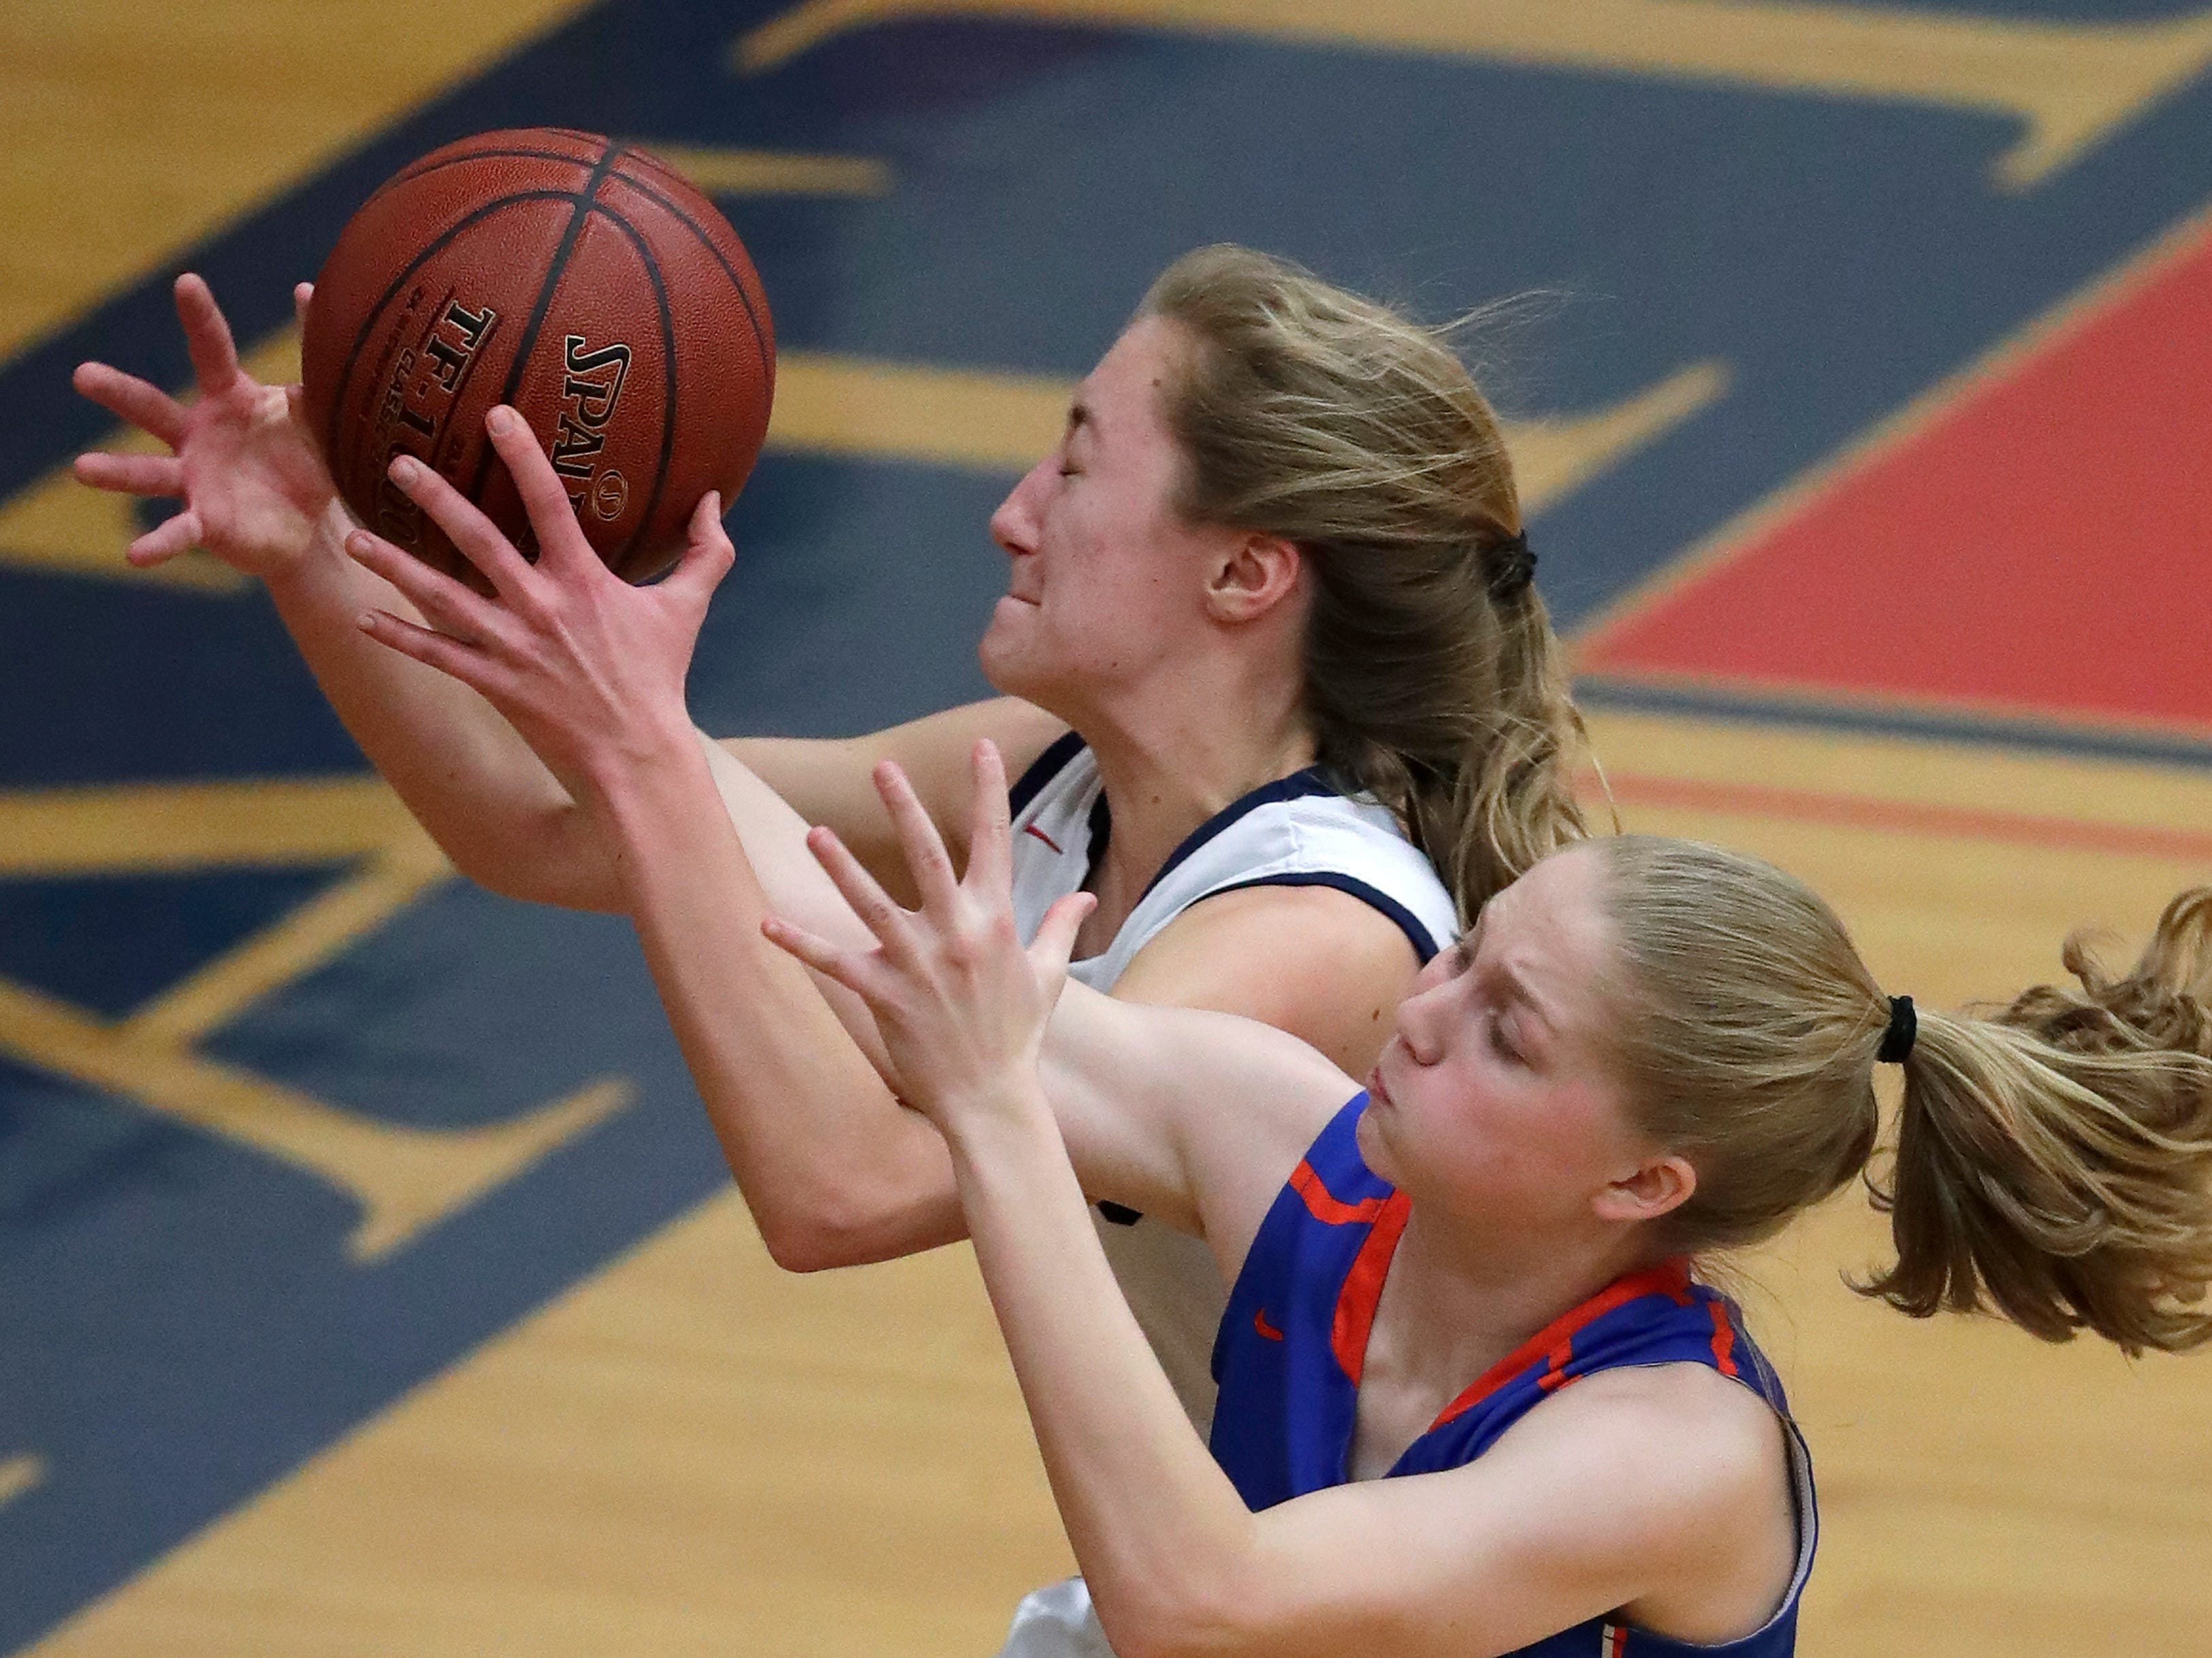 Appleton East High School's Cameron Neubauer (10) chases down a loose ball against Appleton West High School's Jamie Winsted (11) during their girls basketball game Friday, January 11, 2019, at Appleton East High School in Appleton, Wis. 